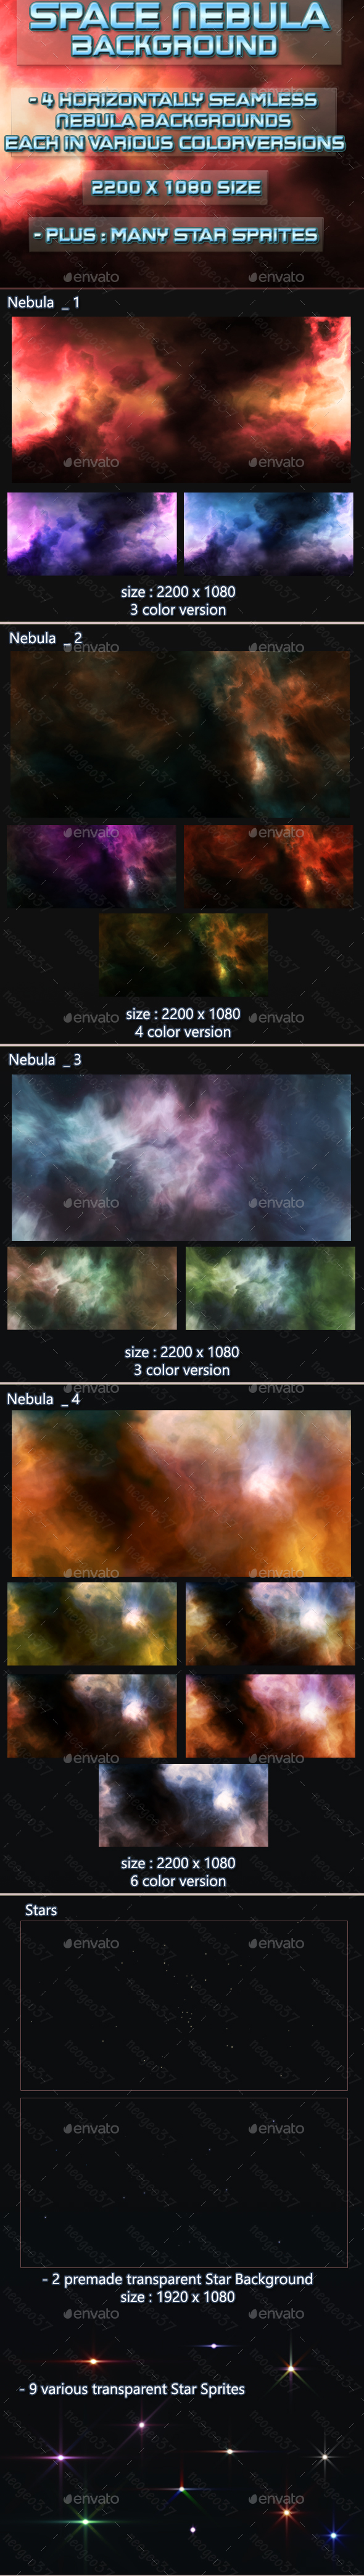 Nebula Space Background - Backgrounds Game Assets